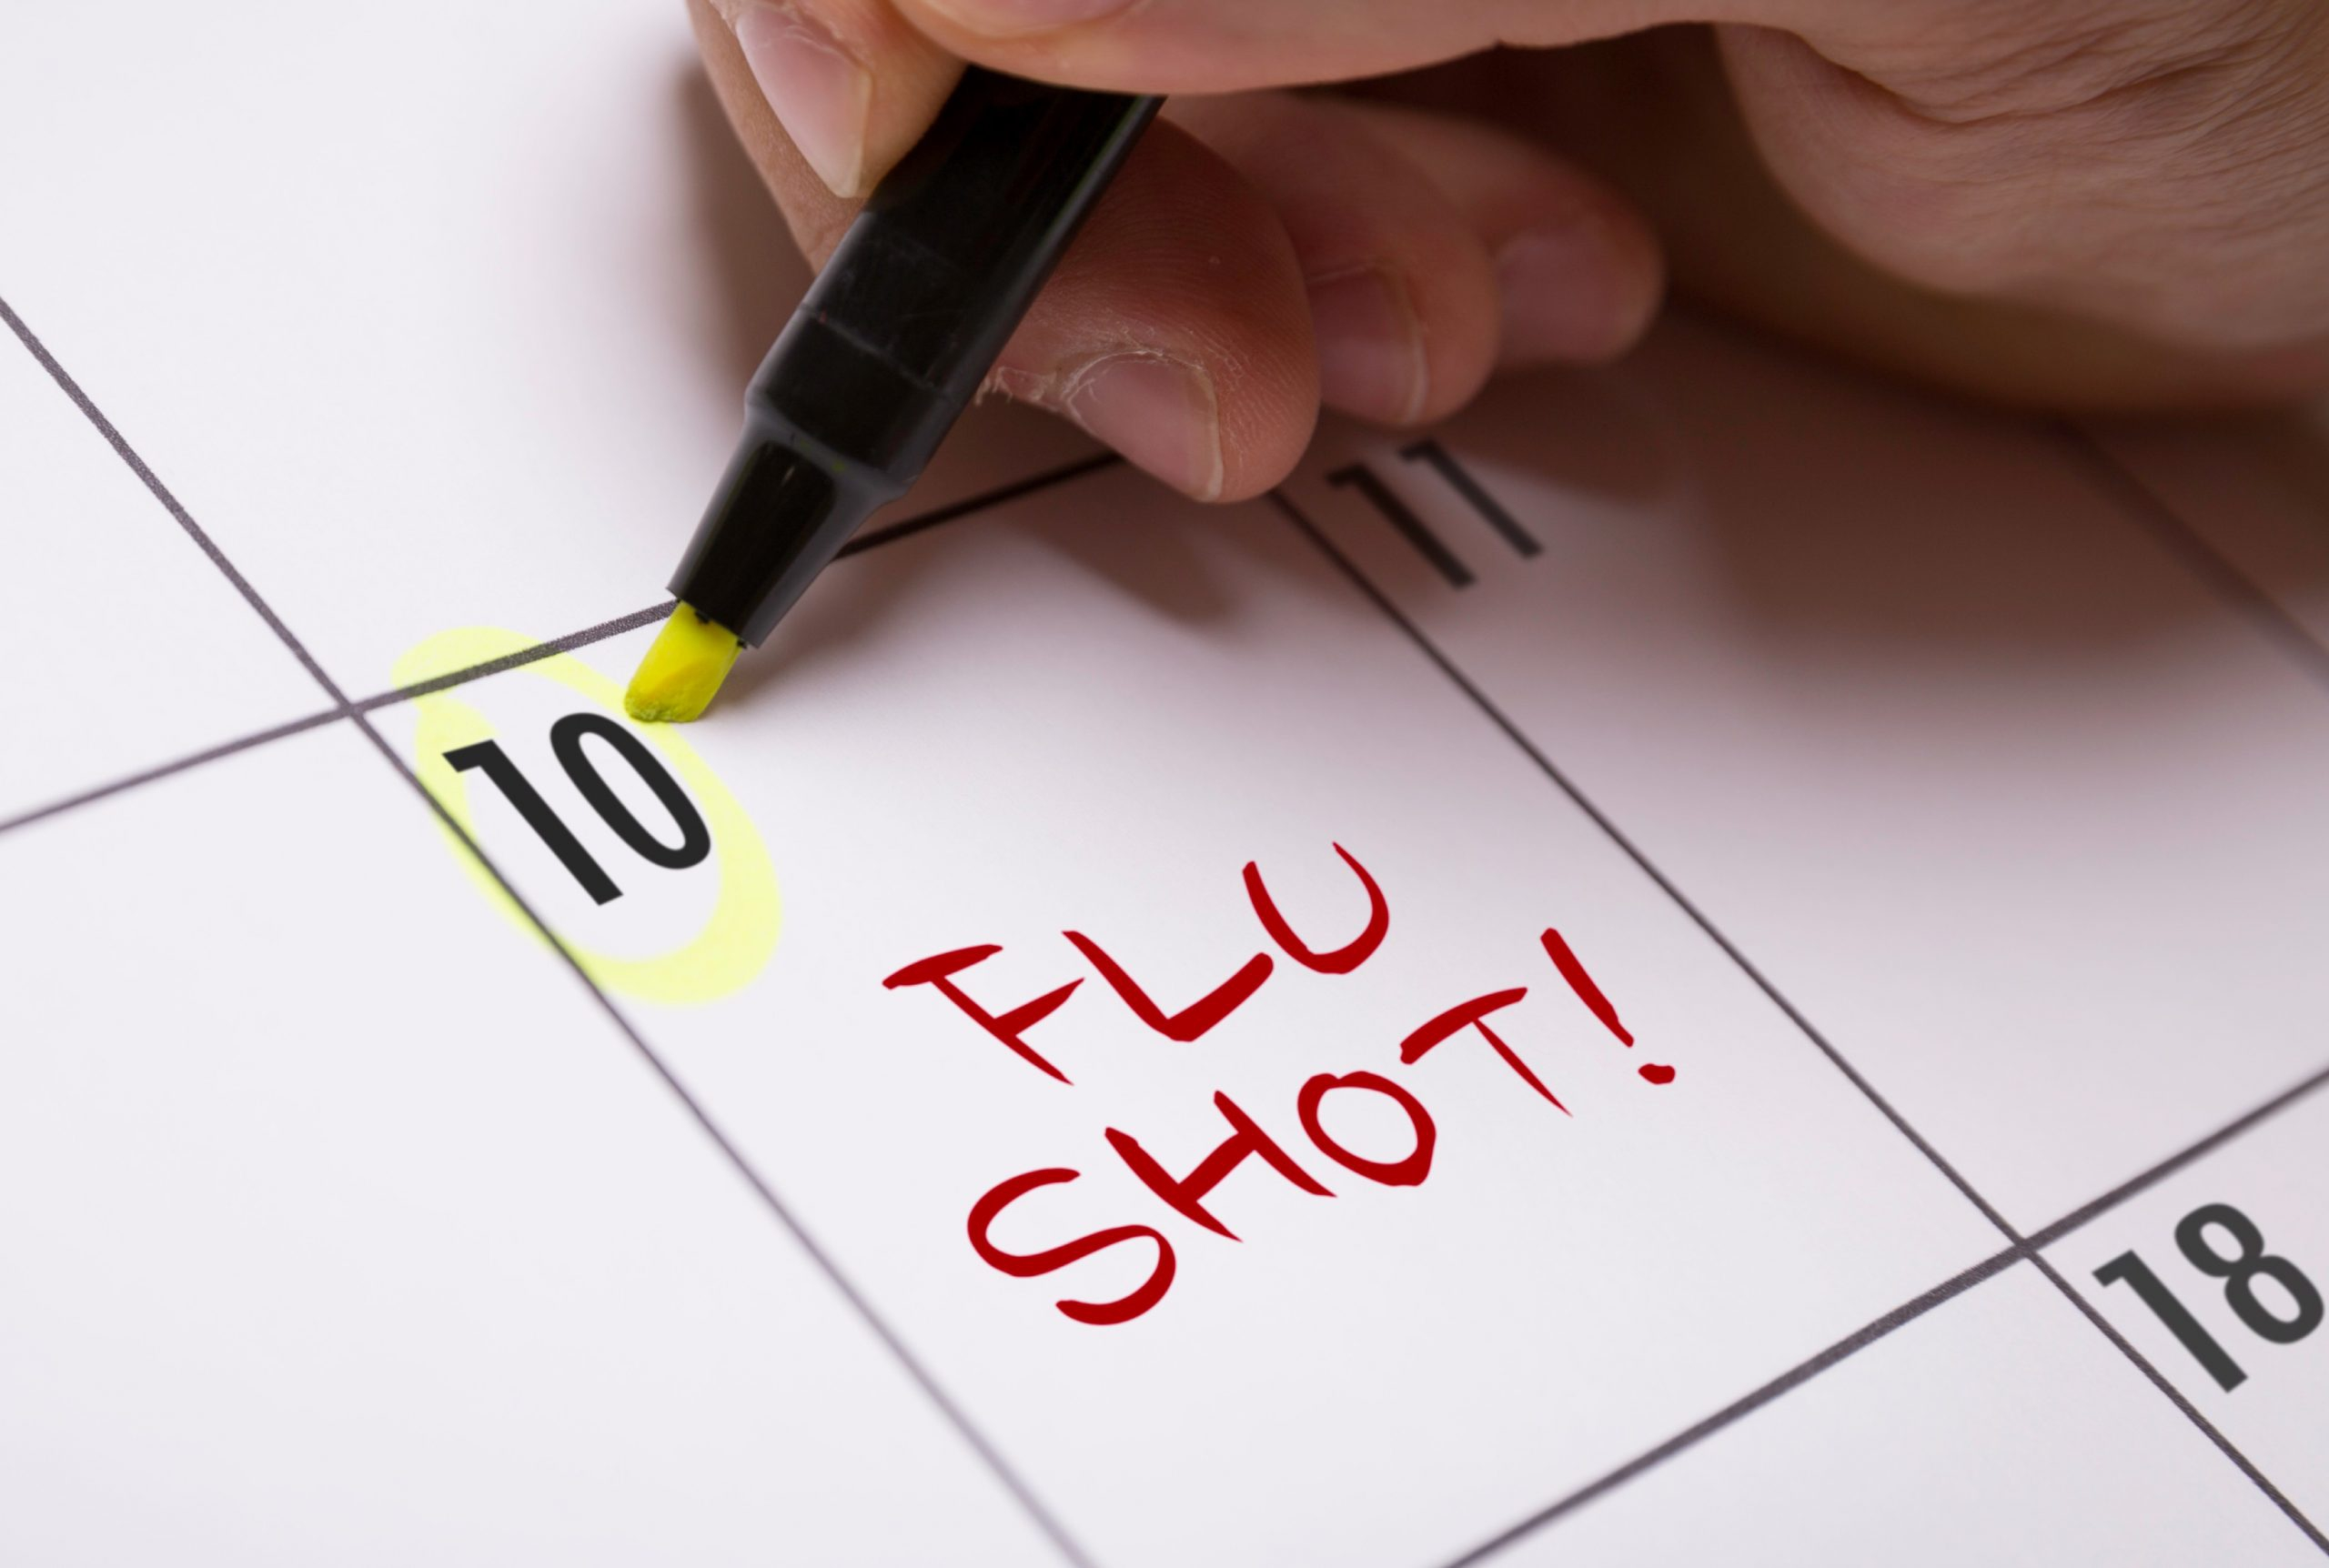 Flu shots in Ontario